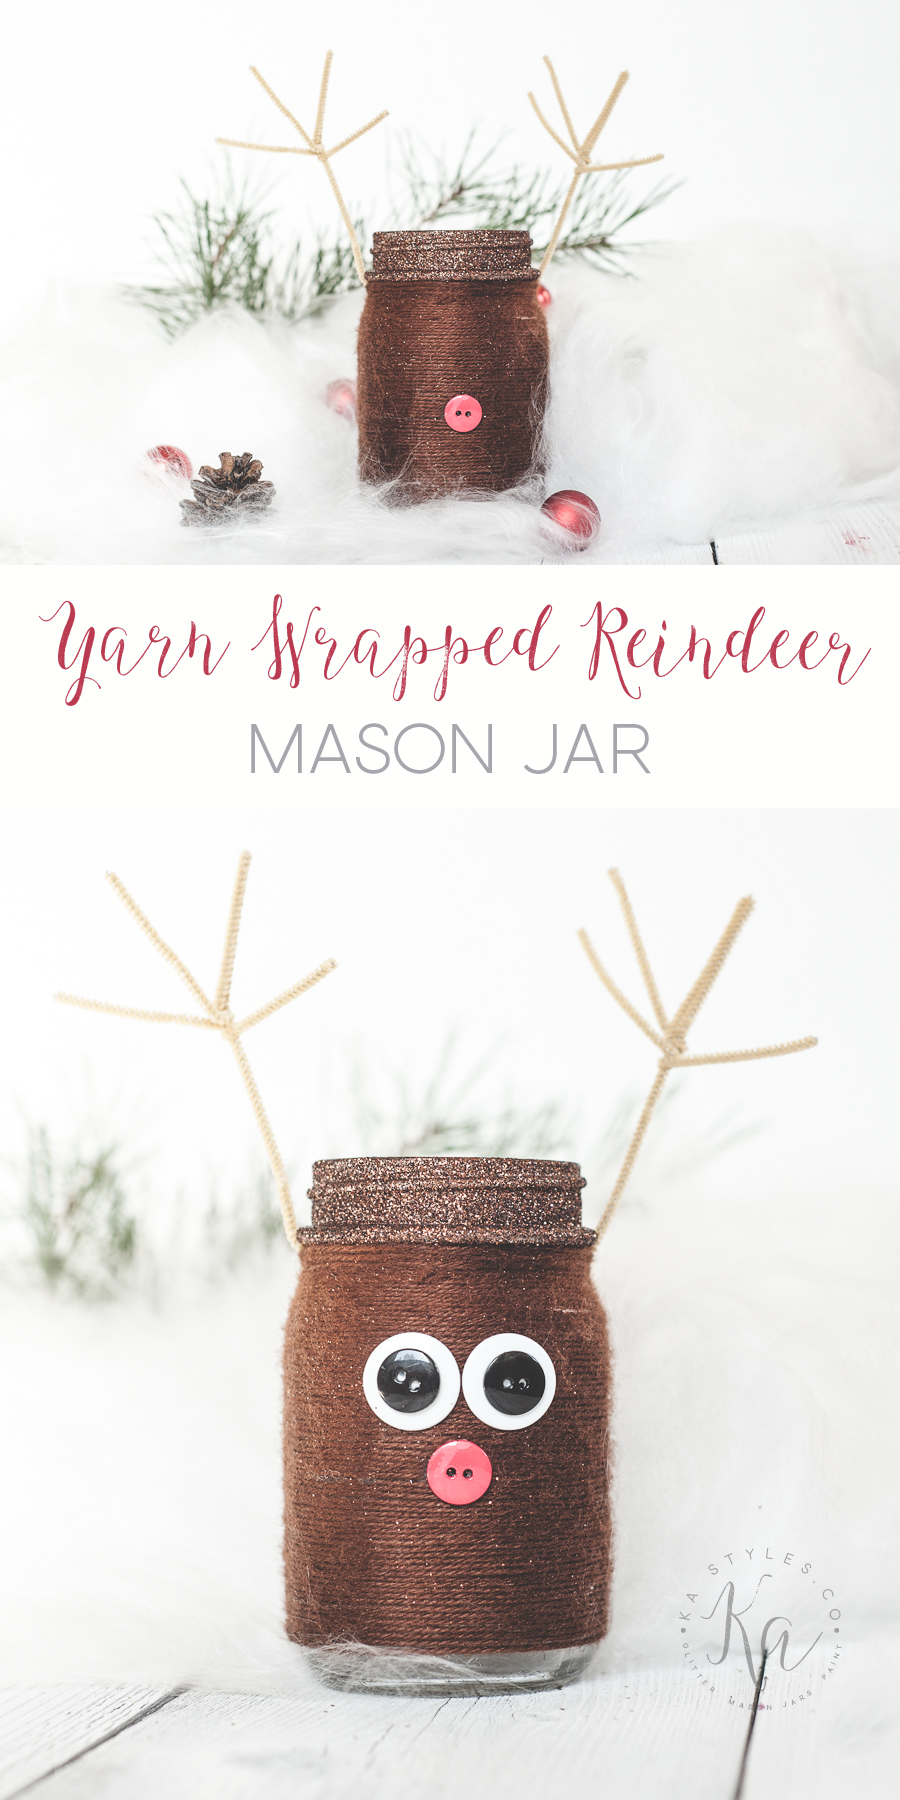 DIY yarn wrapped reinderr mason jar gift jar, luminary or decor.